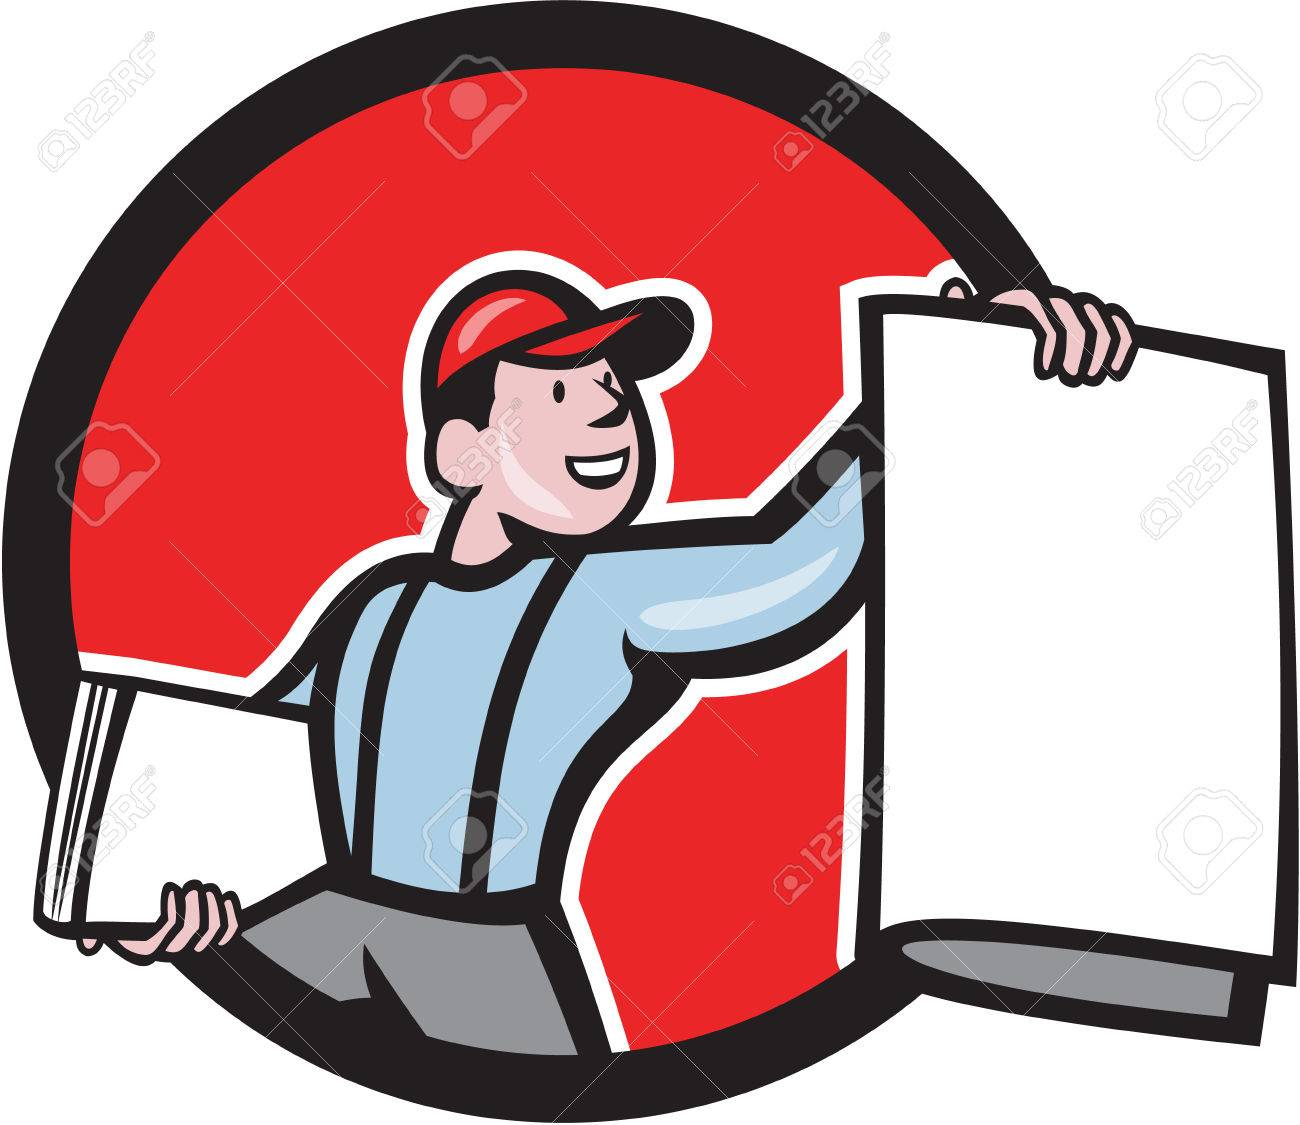 Illustration of a newsboy shouting selling newspaper set inside circle on isolated background done in cartoon style. - 28374086